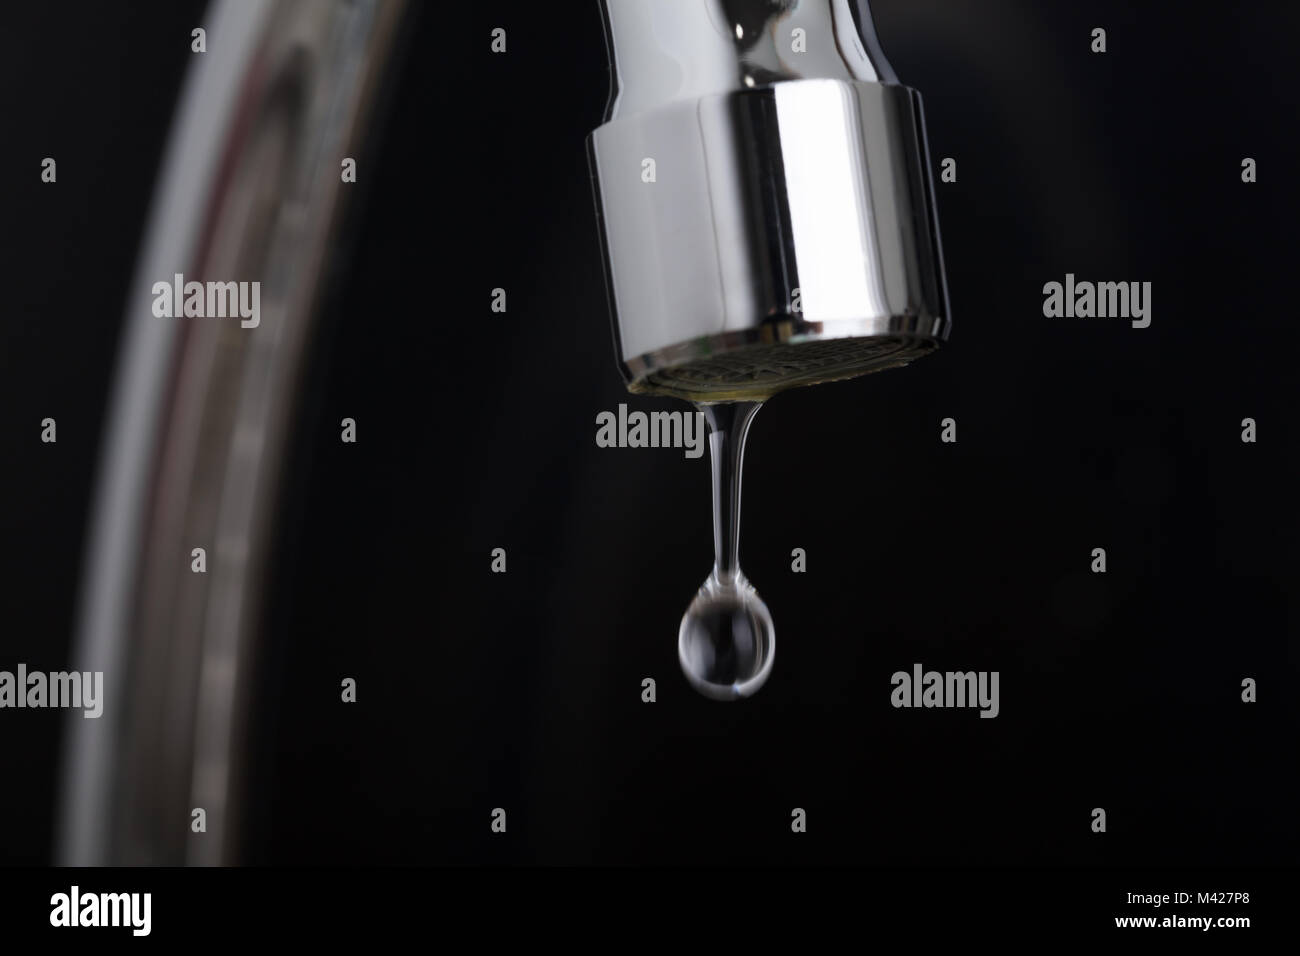 Close-up Of Leakage Tap With Dripping Water Drop - Stock Image